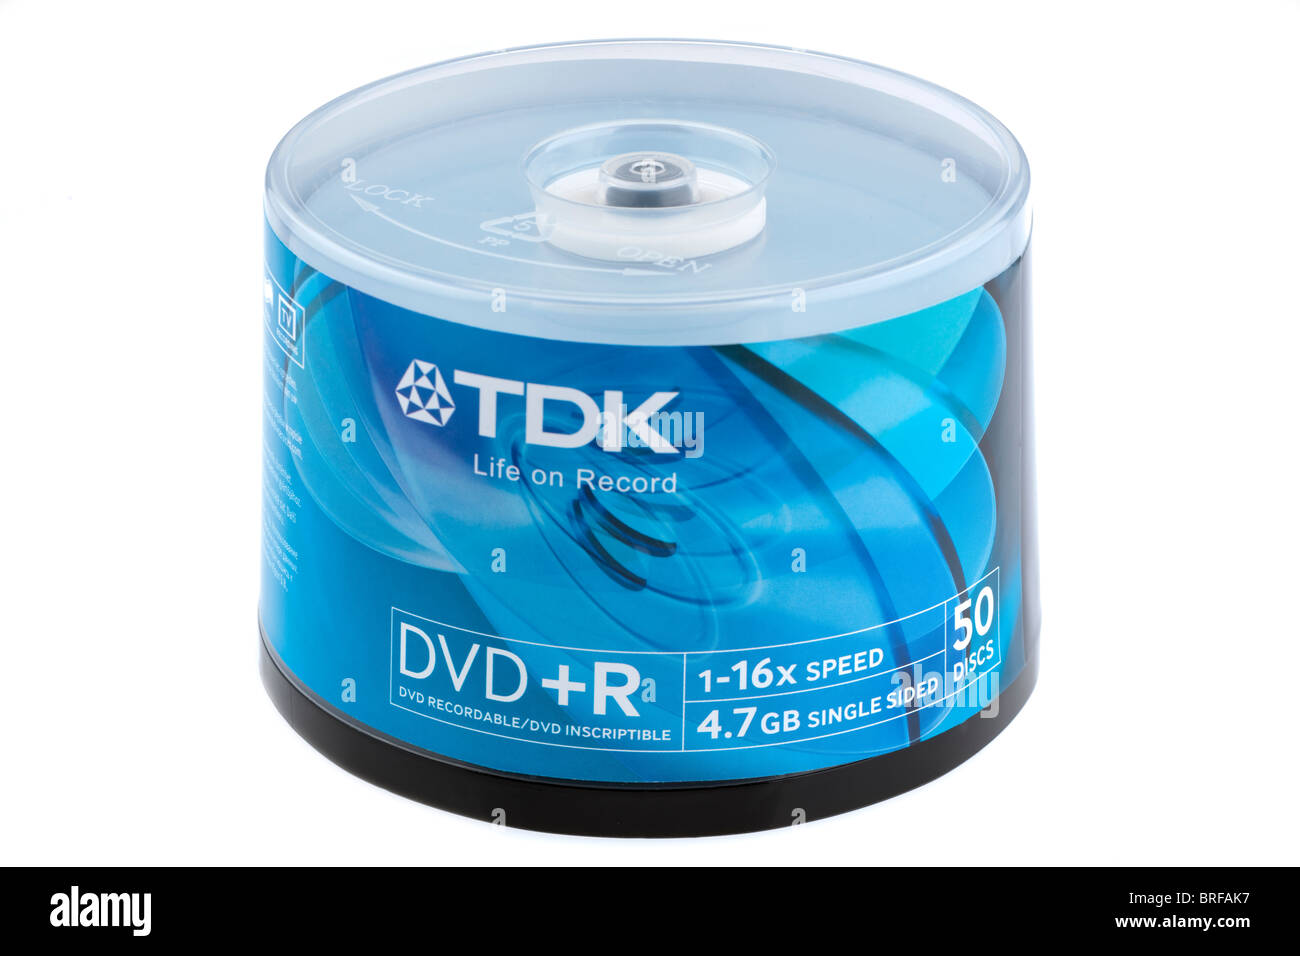 Plastic canister pack of 50 TDK DVD+R recordable 16 times speed 4.7gb single sided write once DVD disks - Stock Image